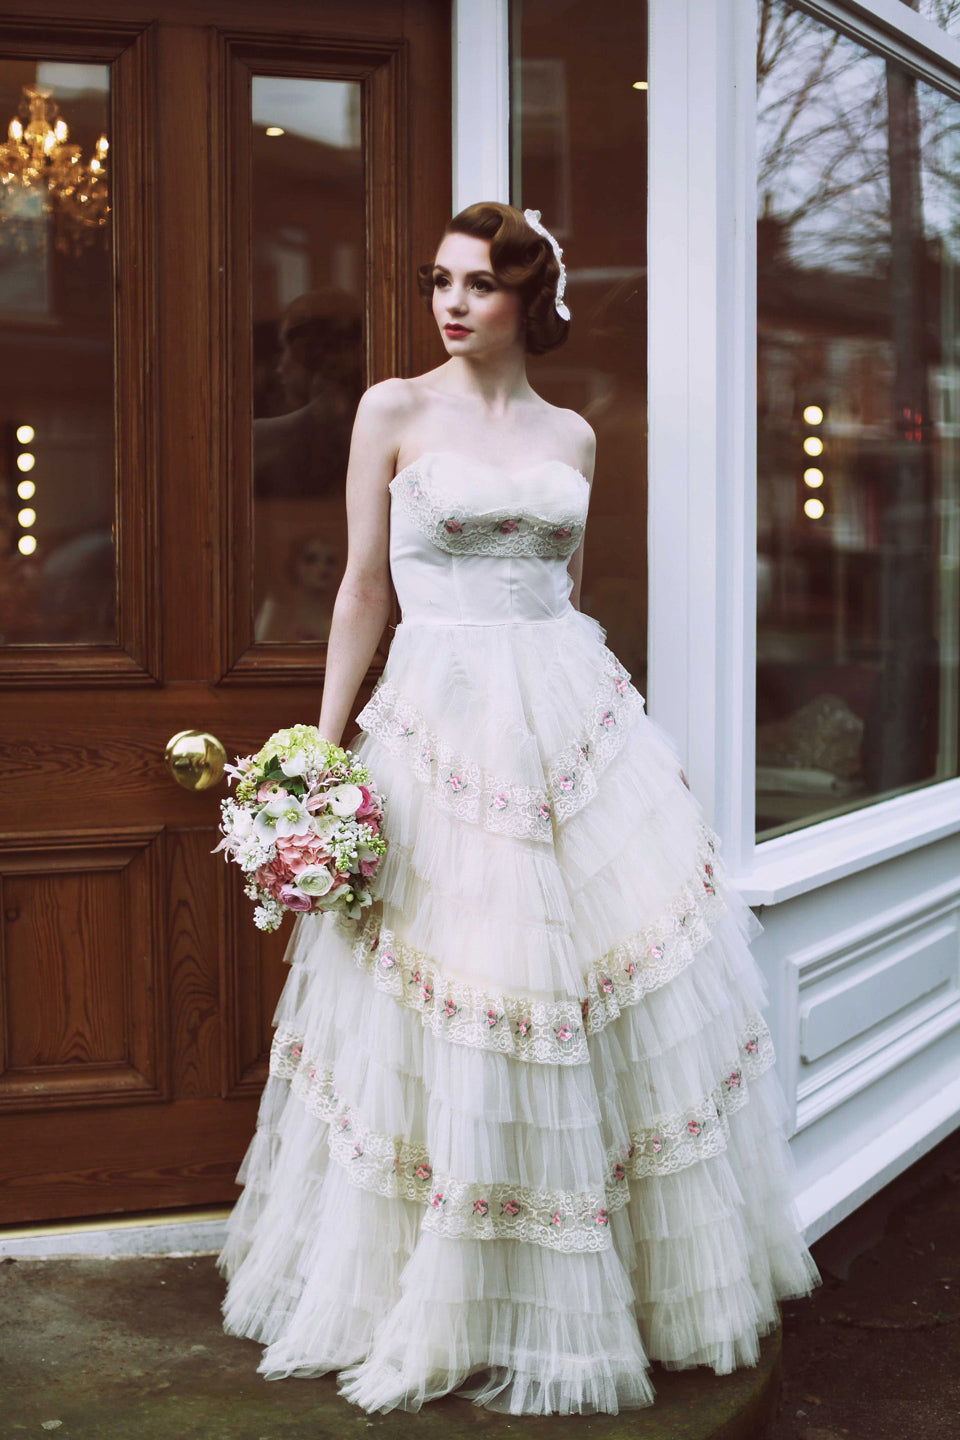 a fifties bride leans against a doorway wearing a dress made with tiers of white lace edged with a pretty pink rosebud pattern. A pink and white bouquet rests in her hand, and an elegant 50's fascinator graces her head.